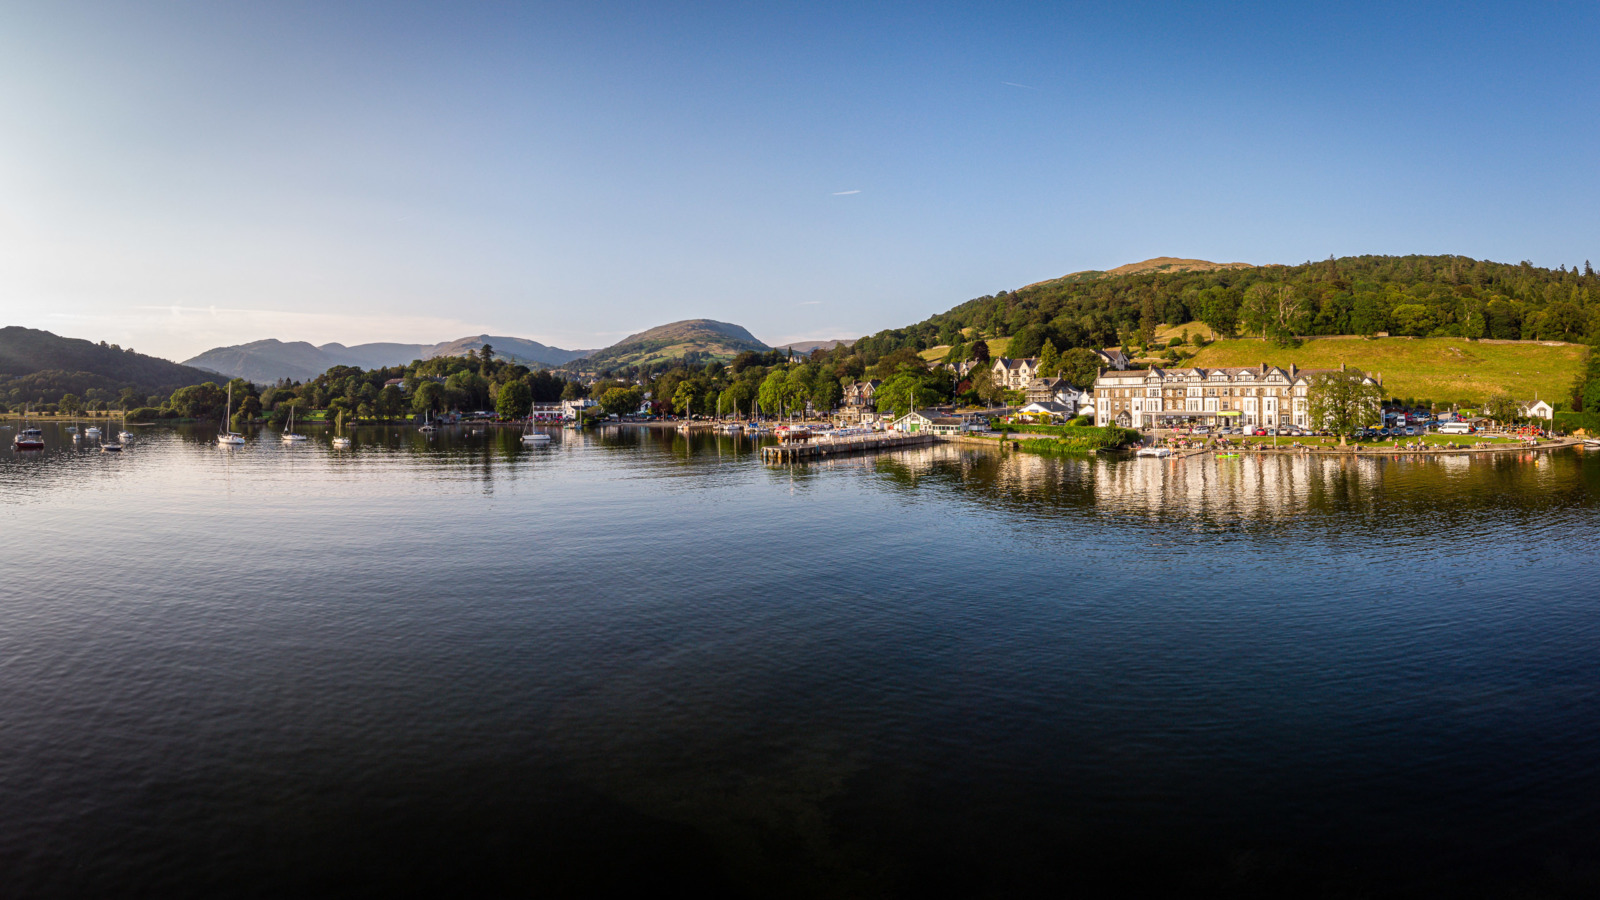 Waterhead Youth Hostel, Ambleside, Cumbria